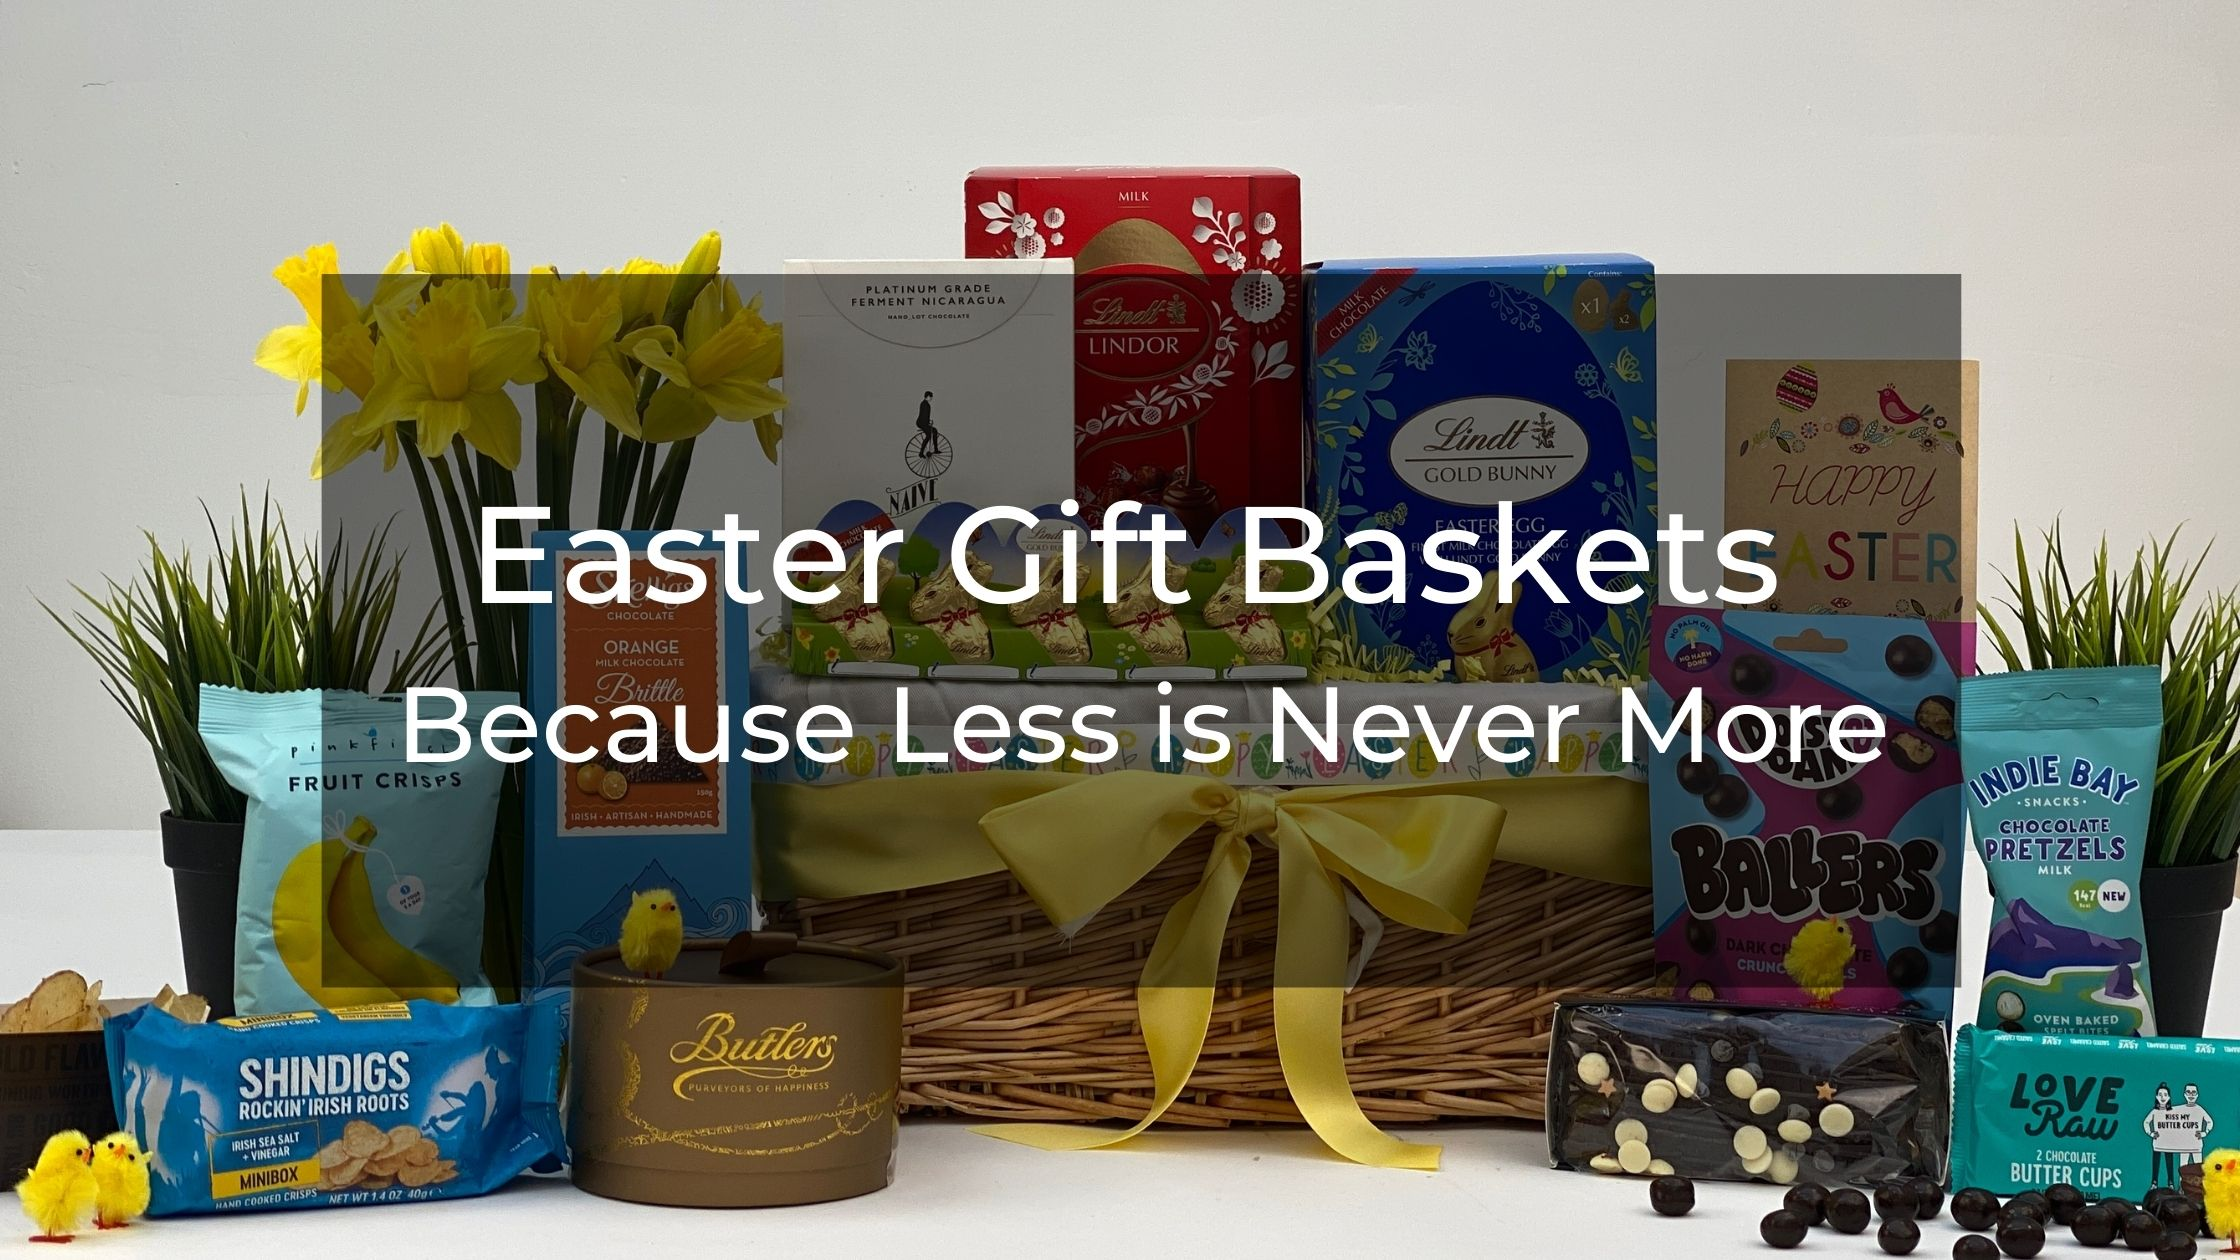 Easter Gift Basket - Because Less is Never More